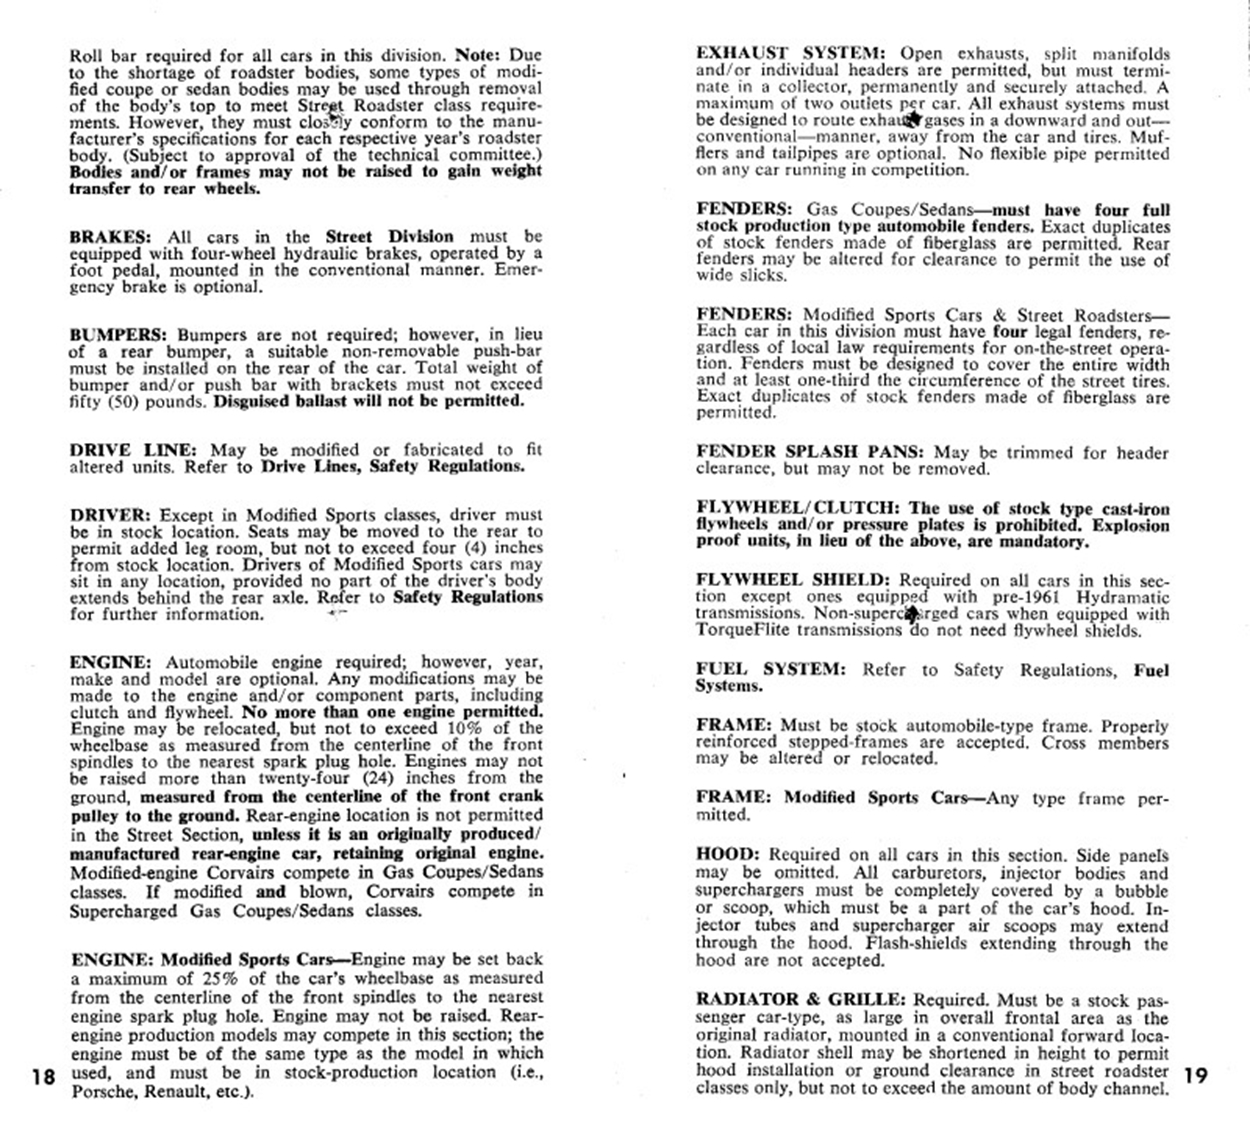 1966 Drag Rules-page11